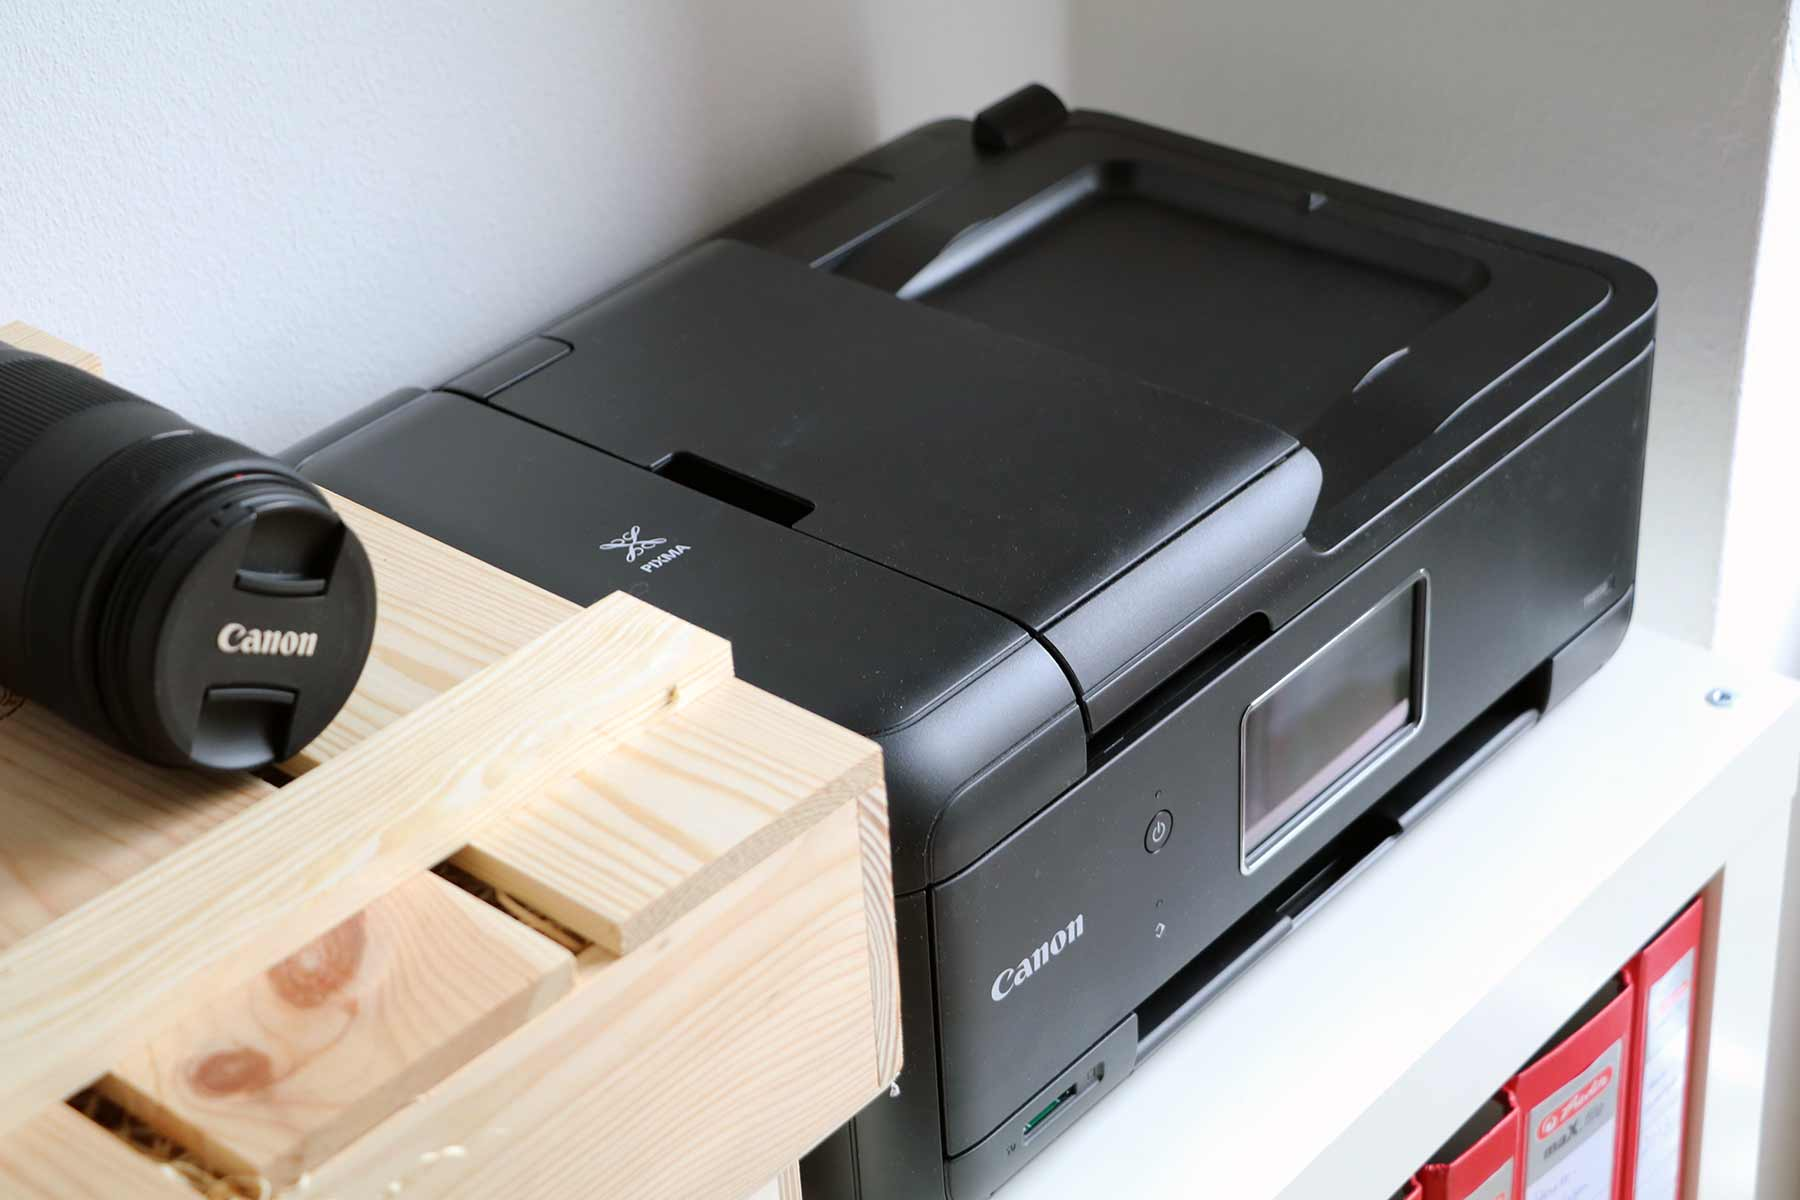 Testbericht: Canon PIXMA TR8550 Multifunktions-Drucker Canon-PIXMA-TR8550-Testbericht_03